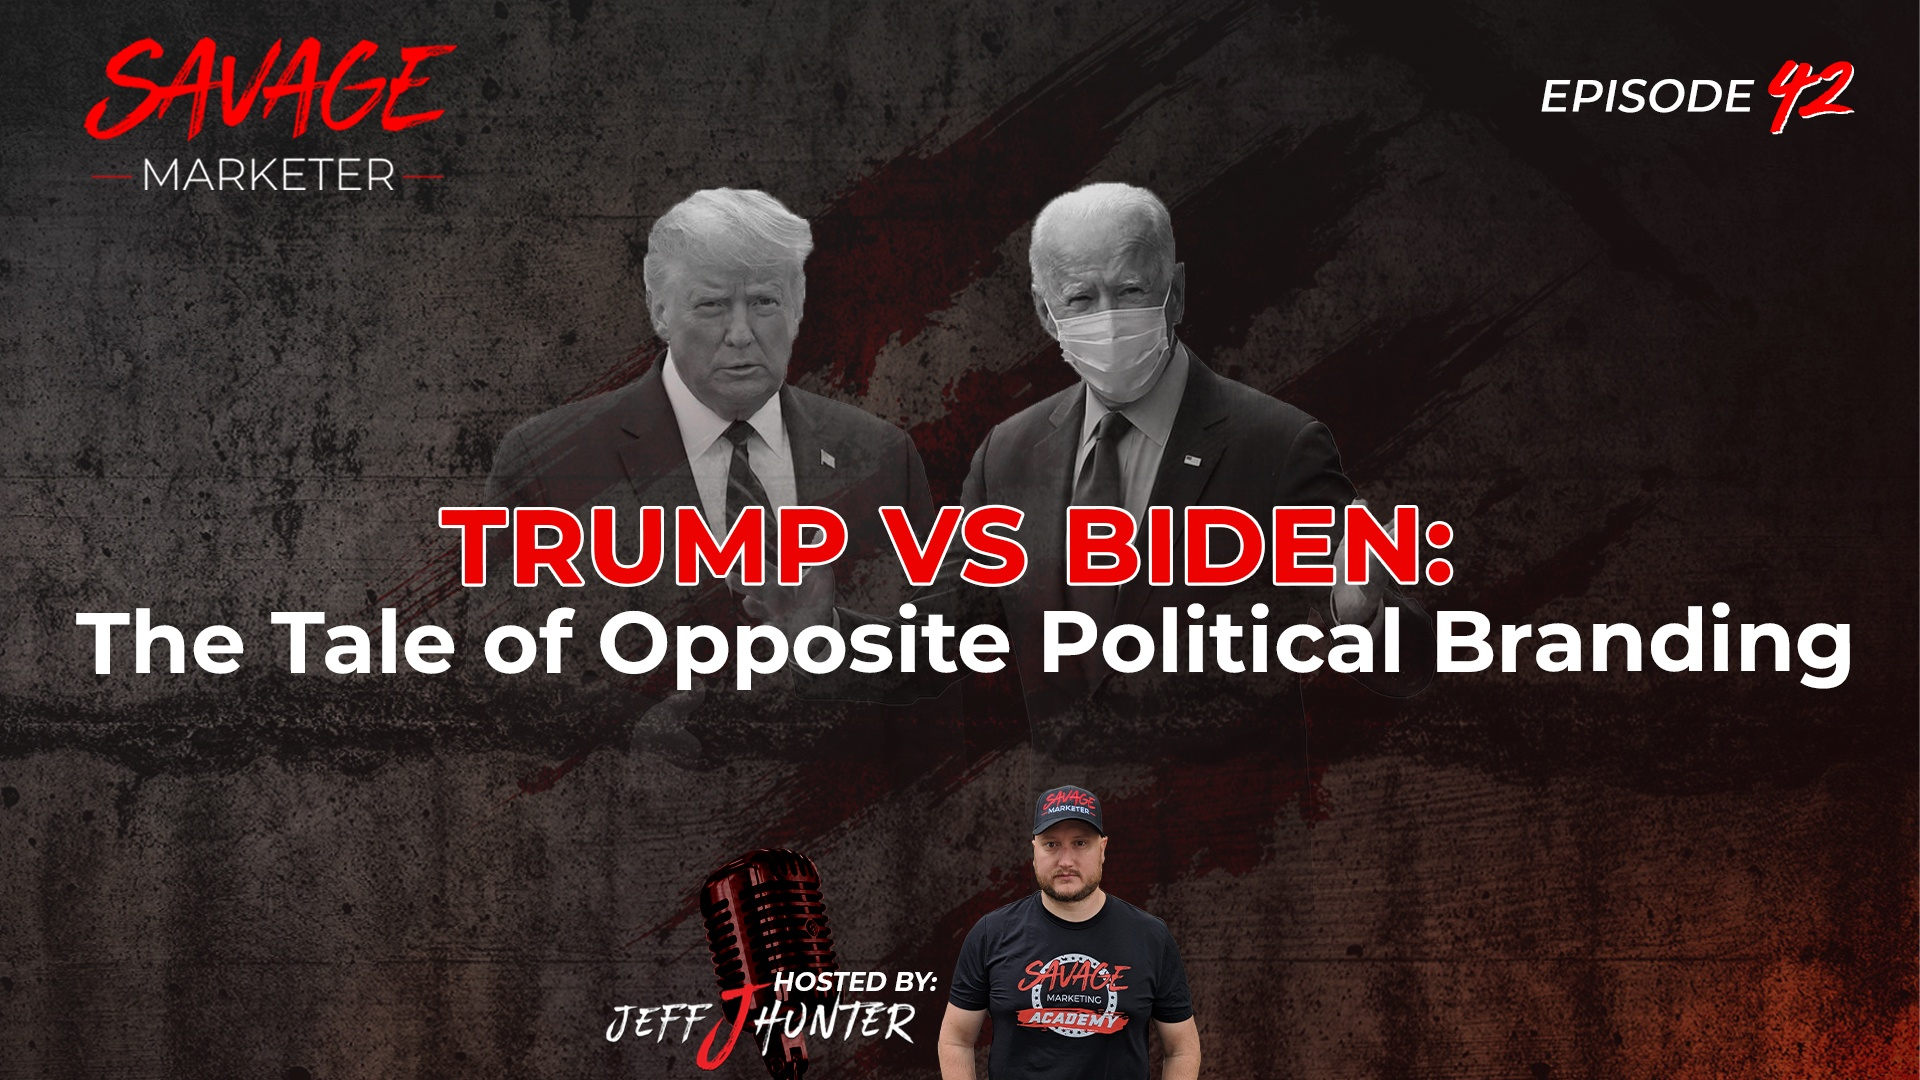 42: Trump vs Biden: The Tale of Opposite Political Branding